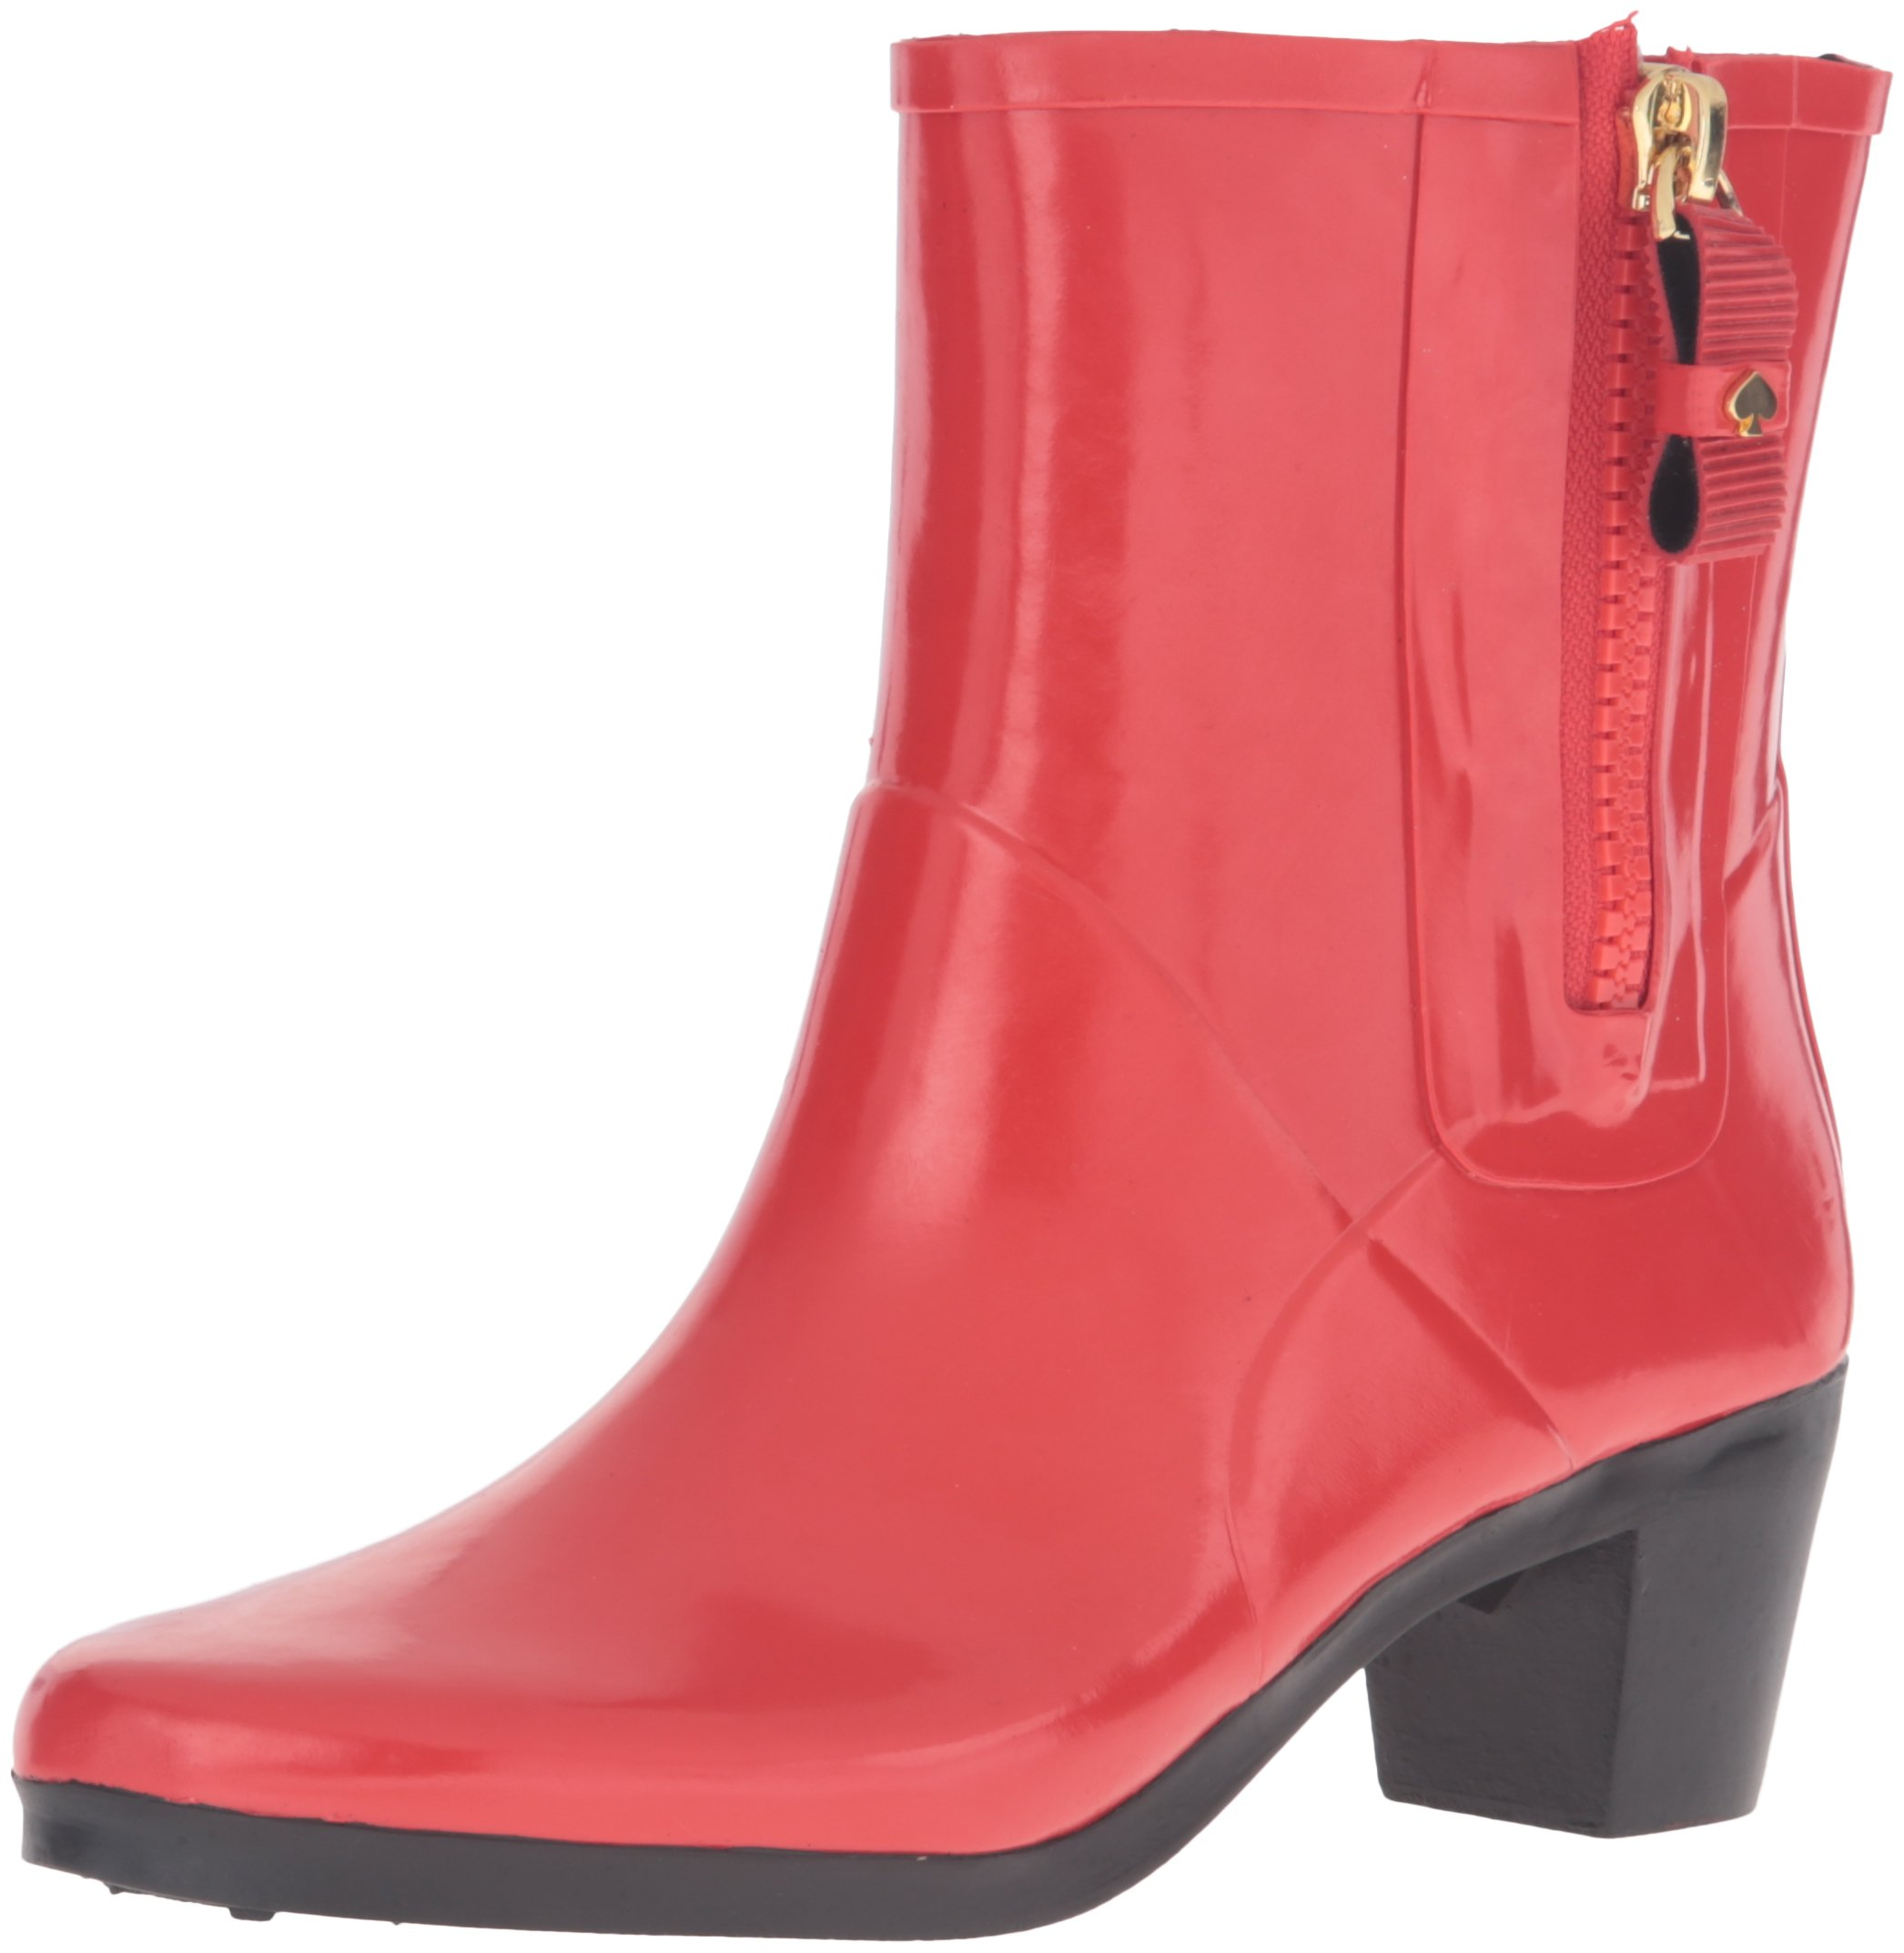 Kate Spade New York Women's Penny Rain Boot, Red, 5 M US